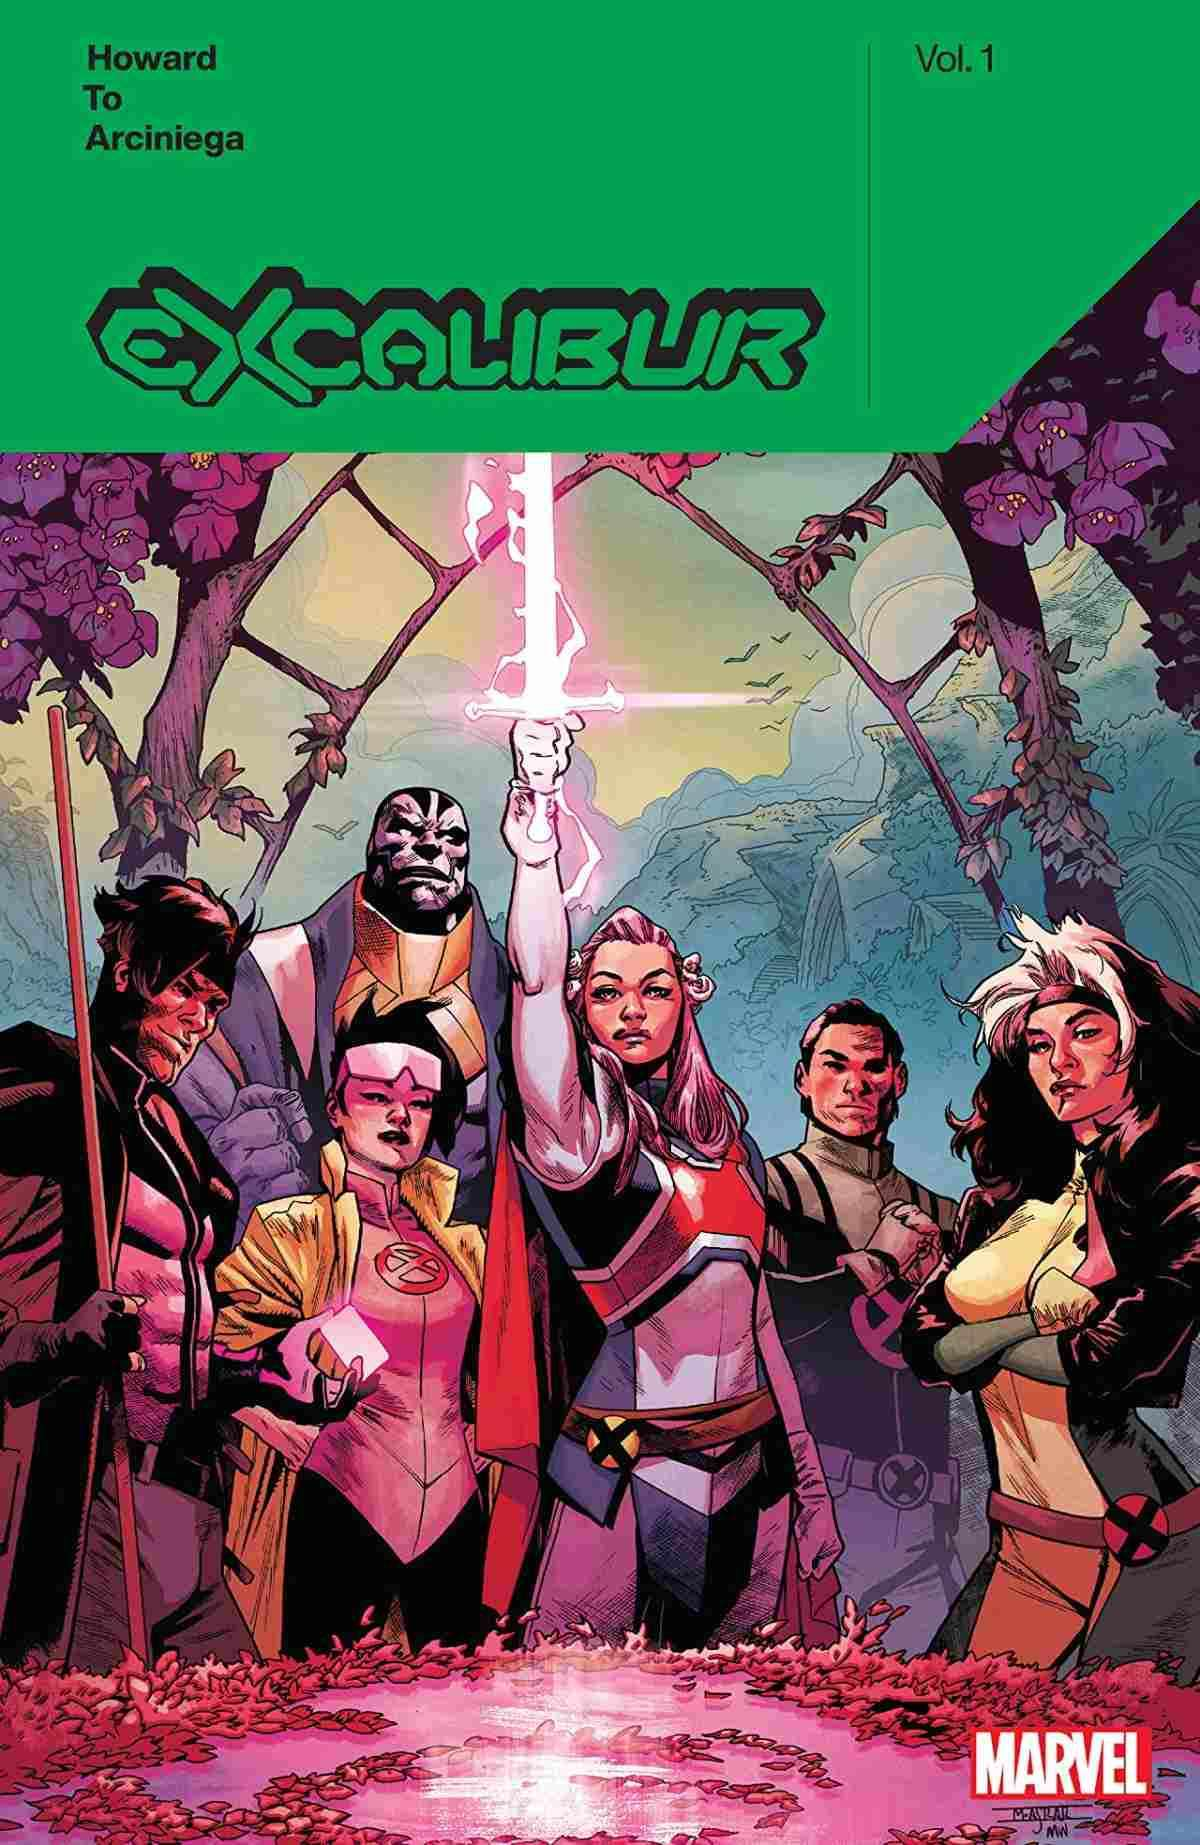 Excalibur by Tini Howard Vol 1